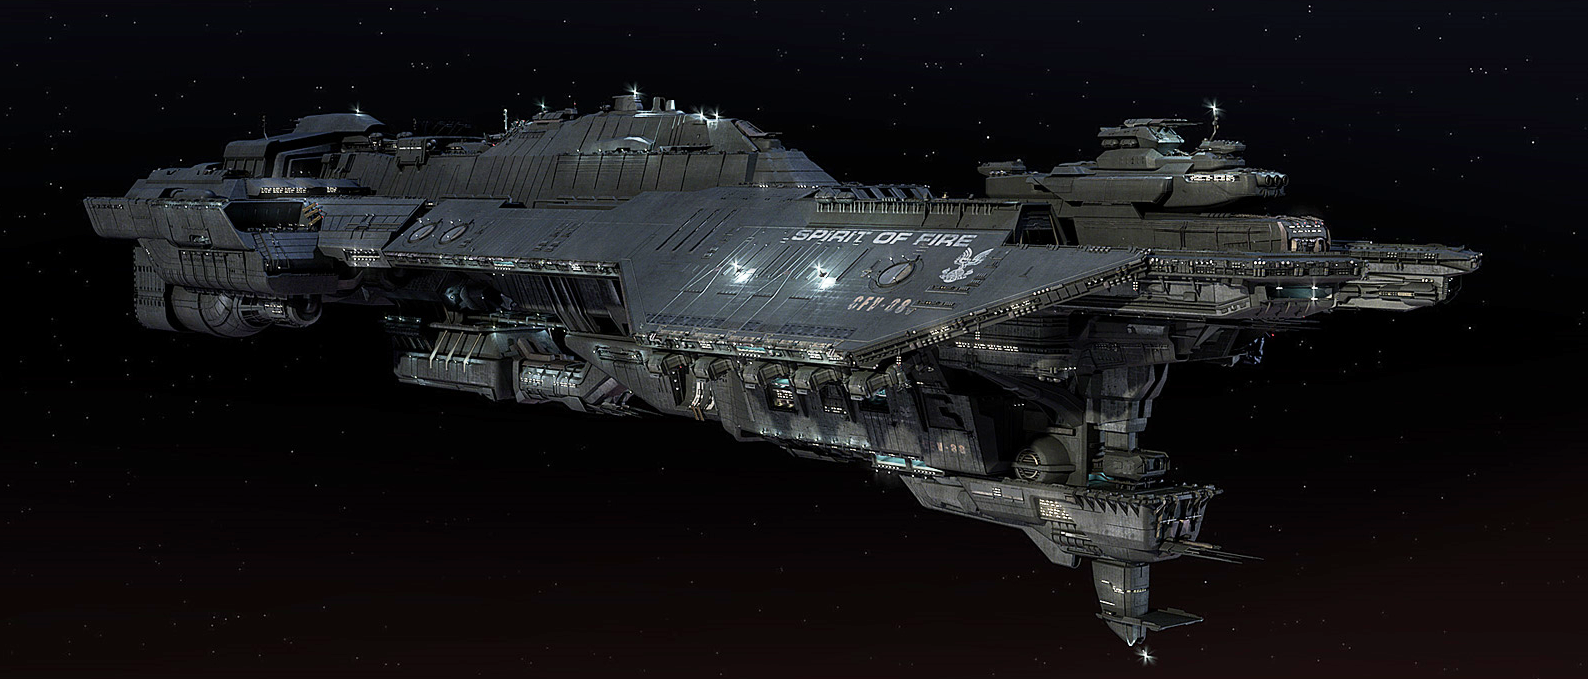 unsc space station huge - photo #16